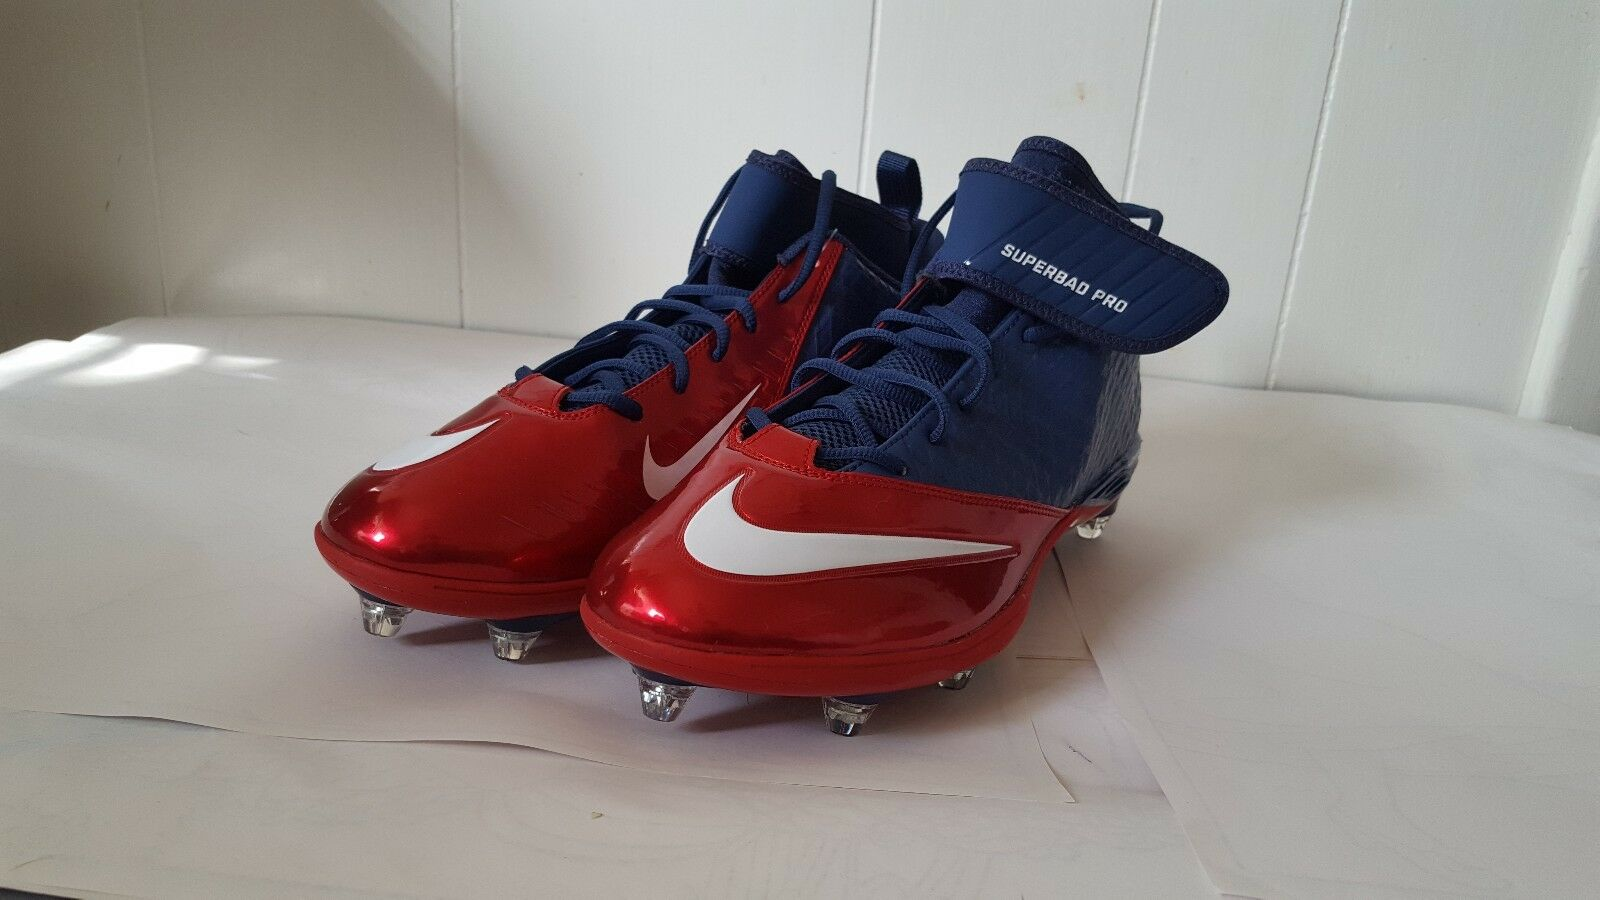 NIKE SUPERBAD LUNARLON PRO CLEATS 544762-413 NAVY RED MEN'S Price reduction